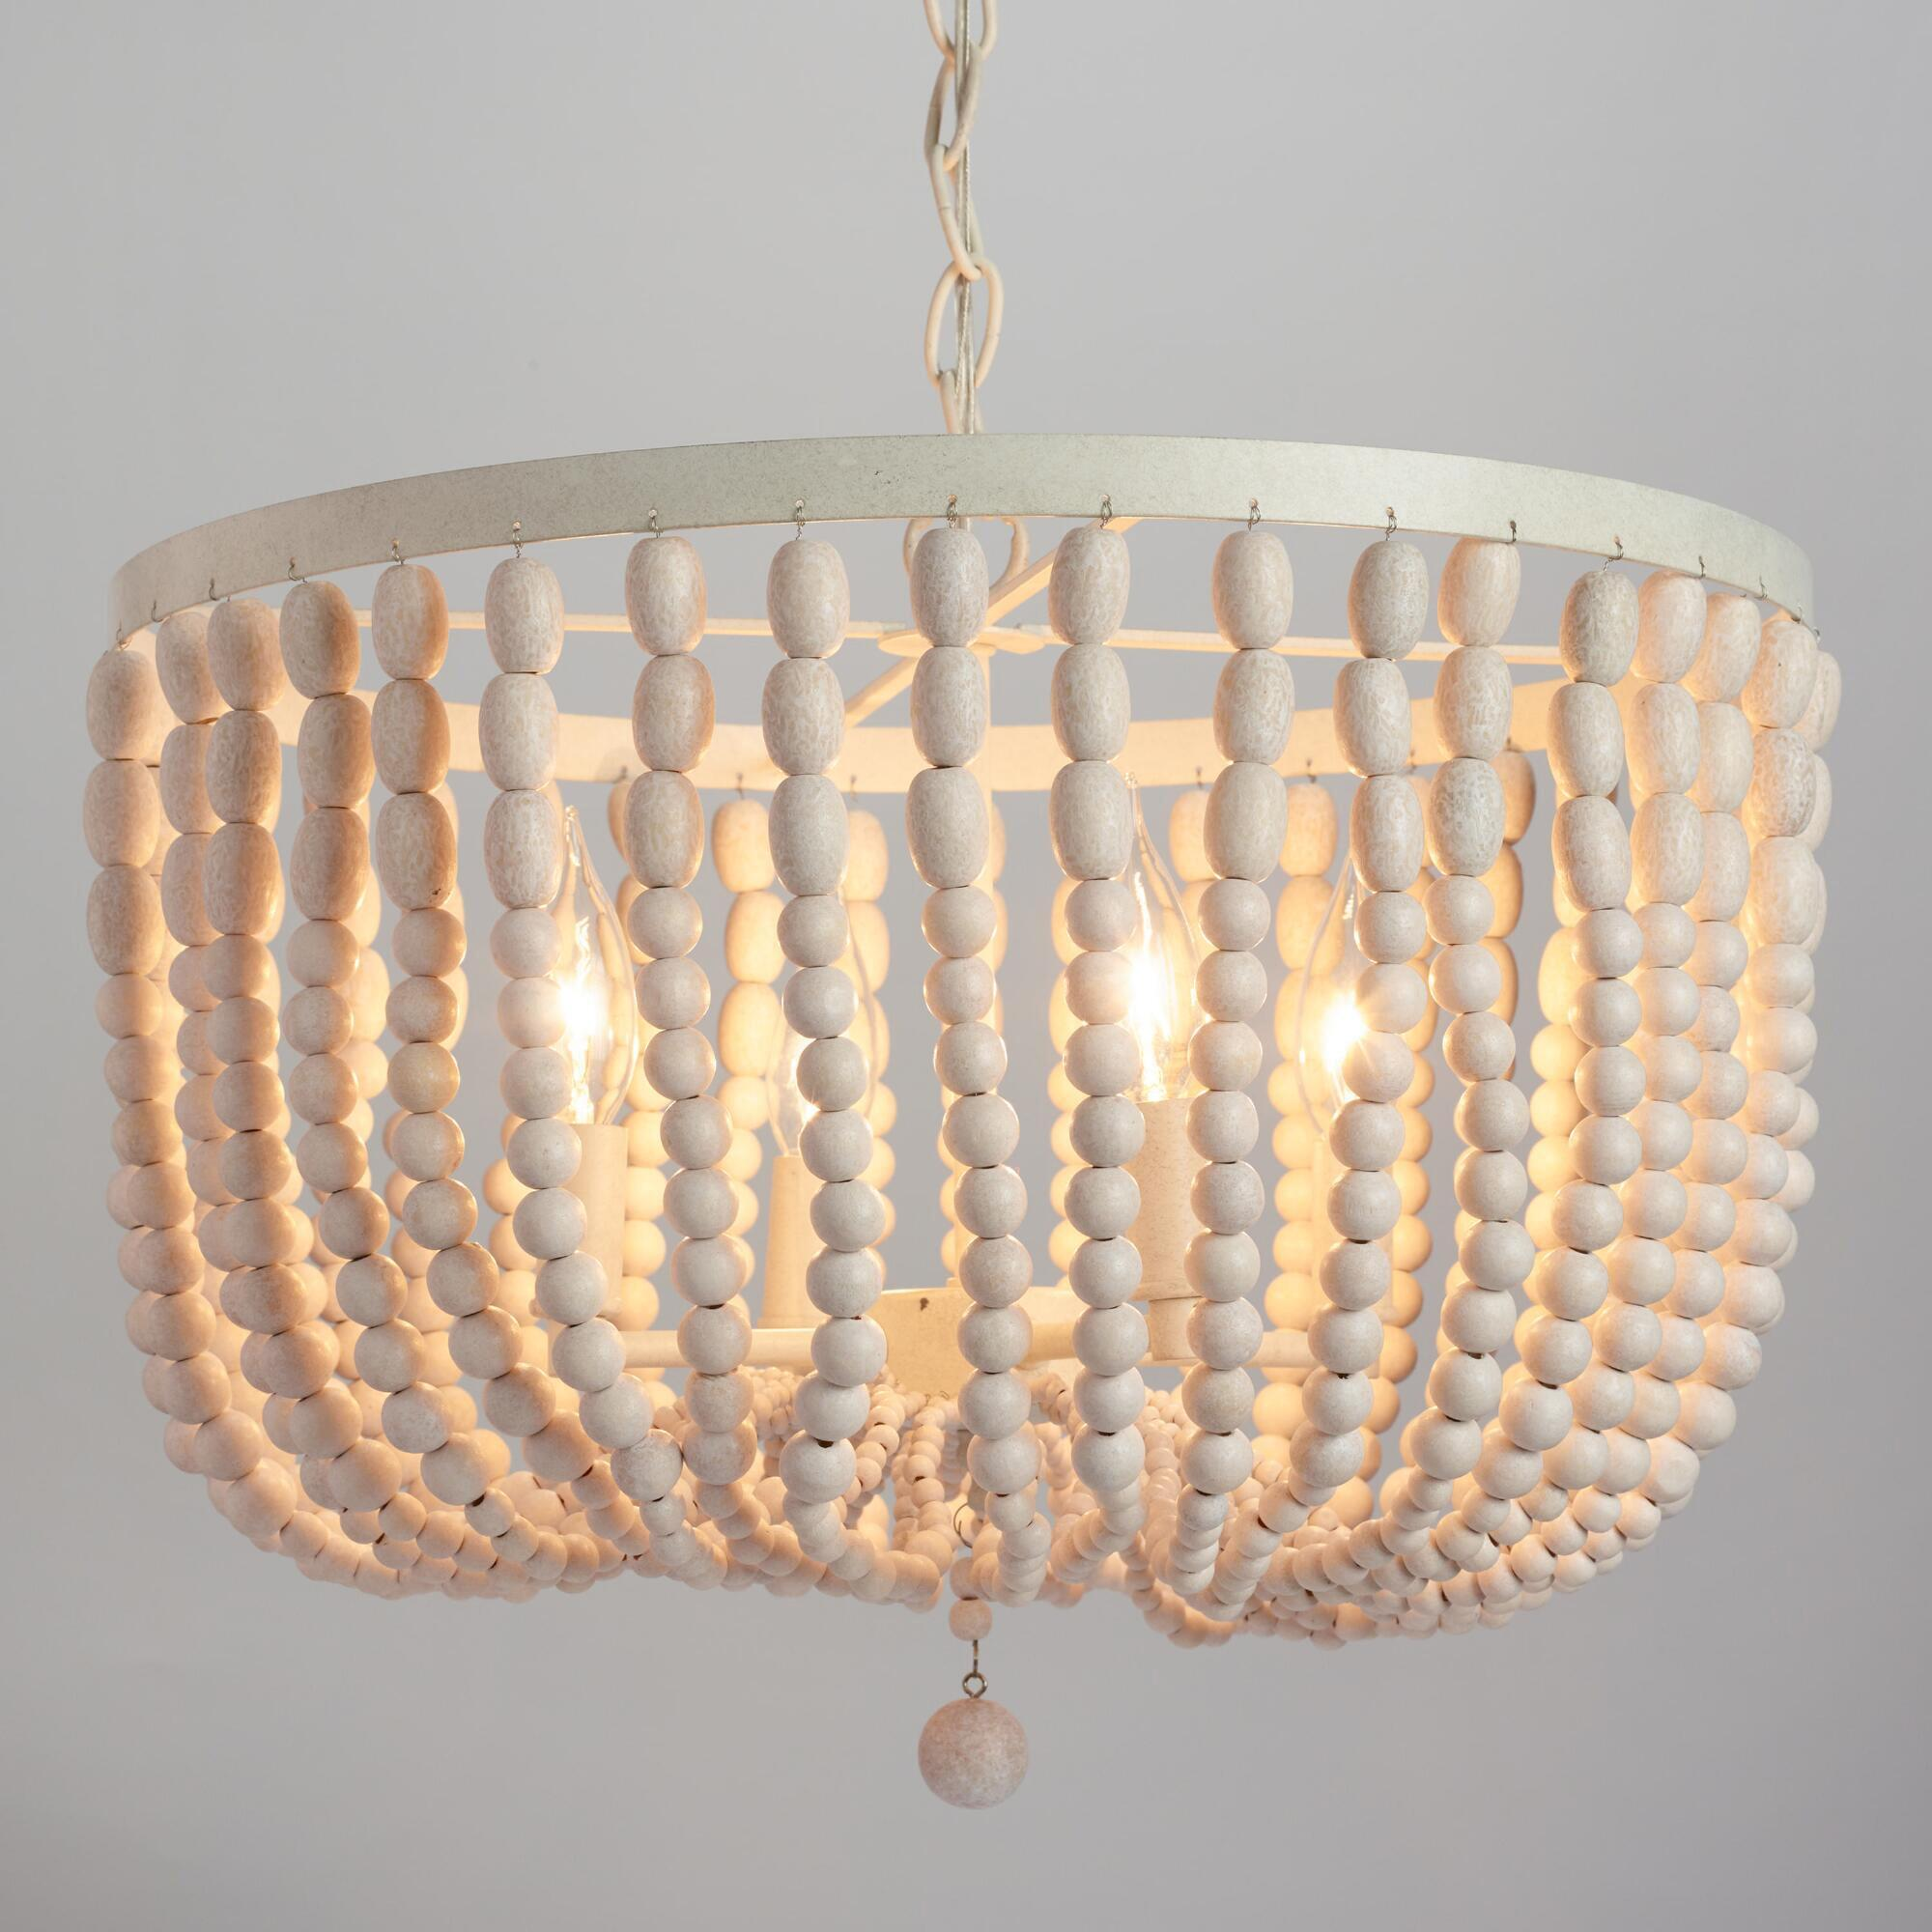 Antique whitewash wood bead chandelier world market - Chandelier glass beads ...